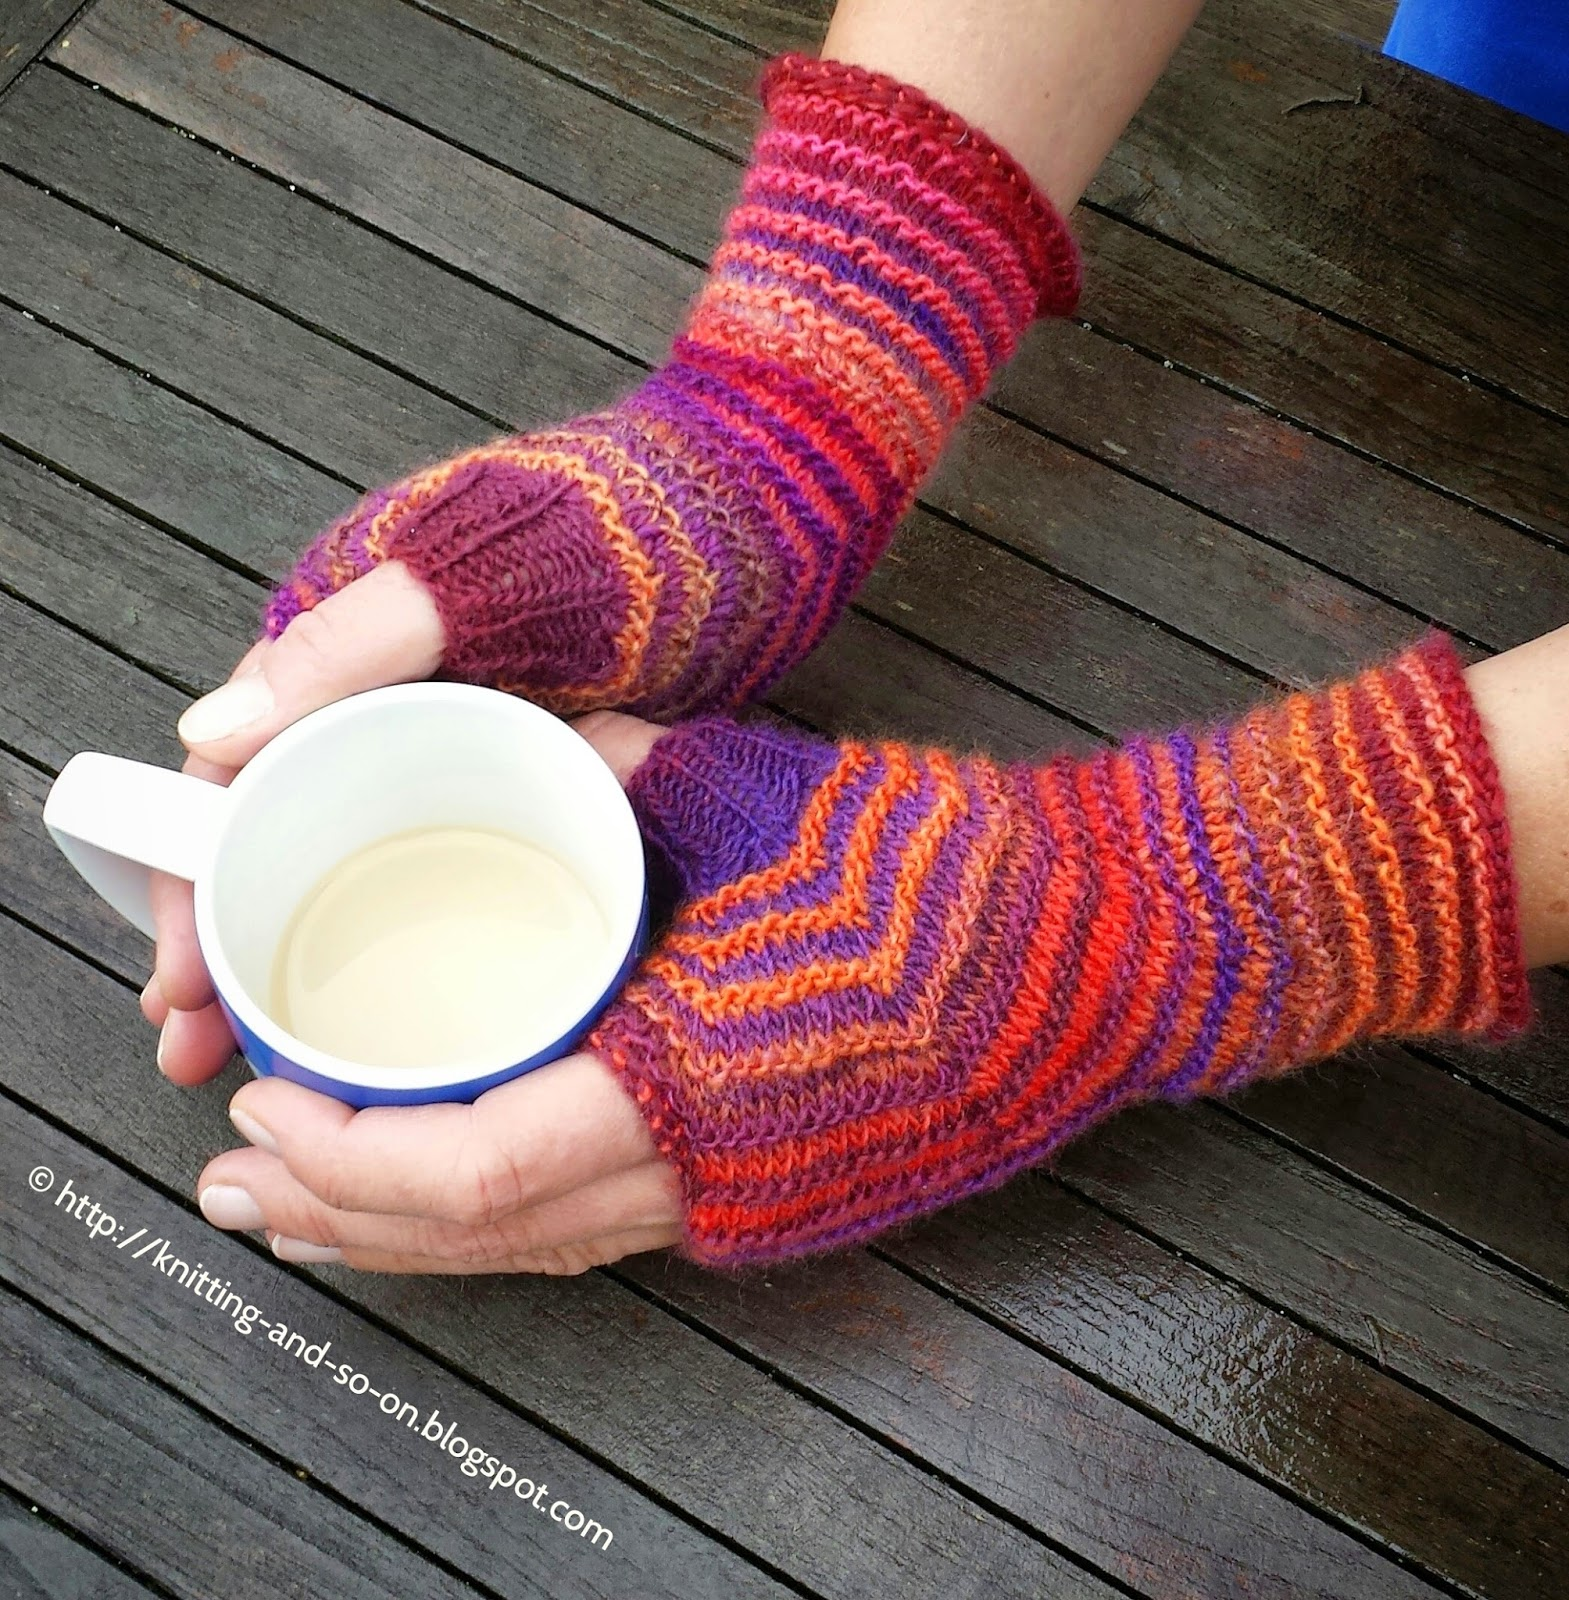 Free Knitting Pattern: Hexagon Mitts in Two Colors